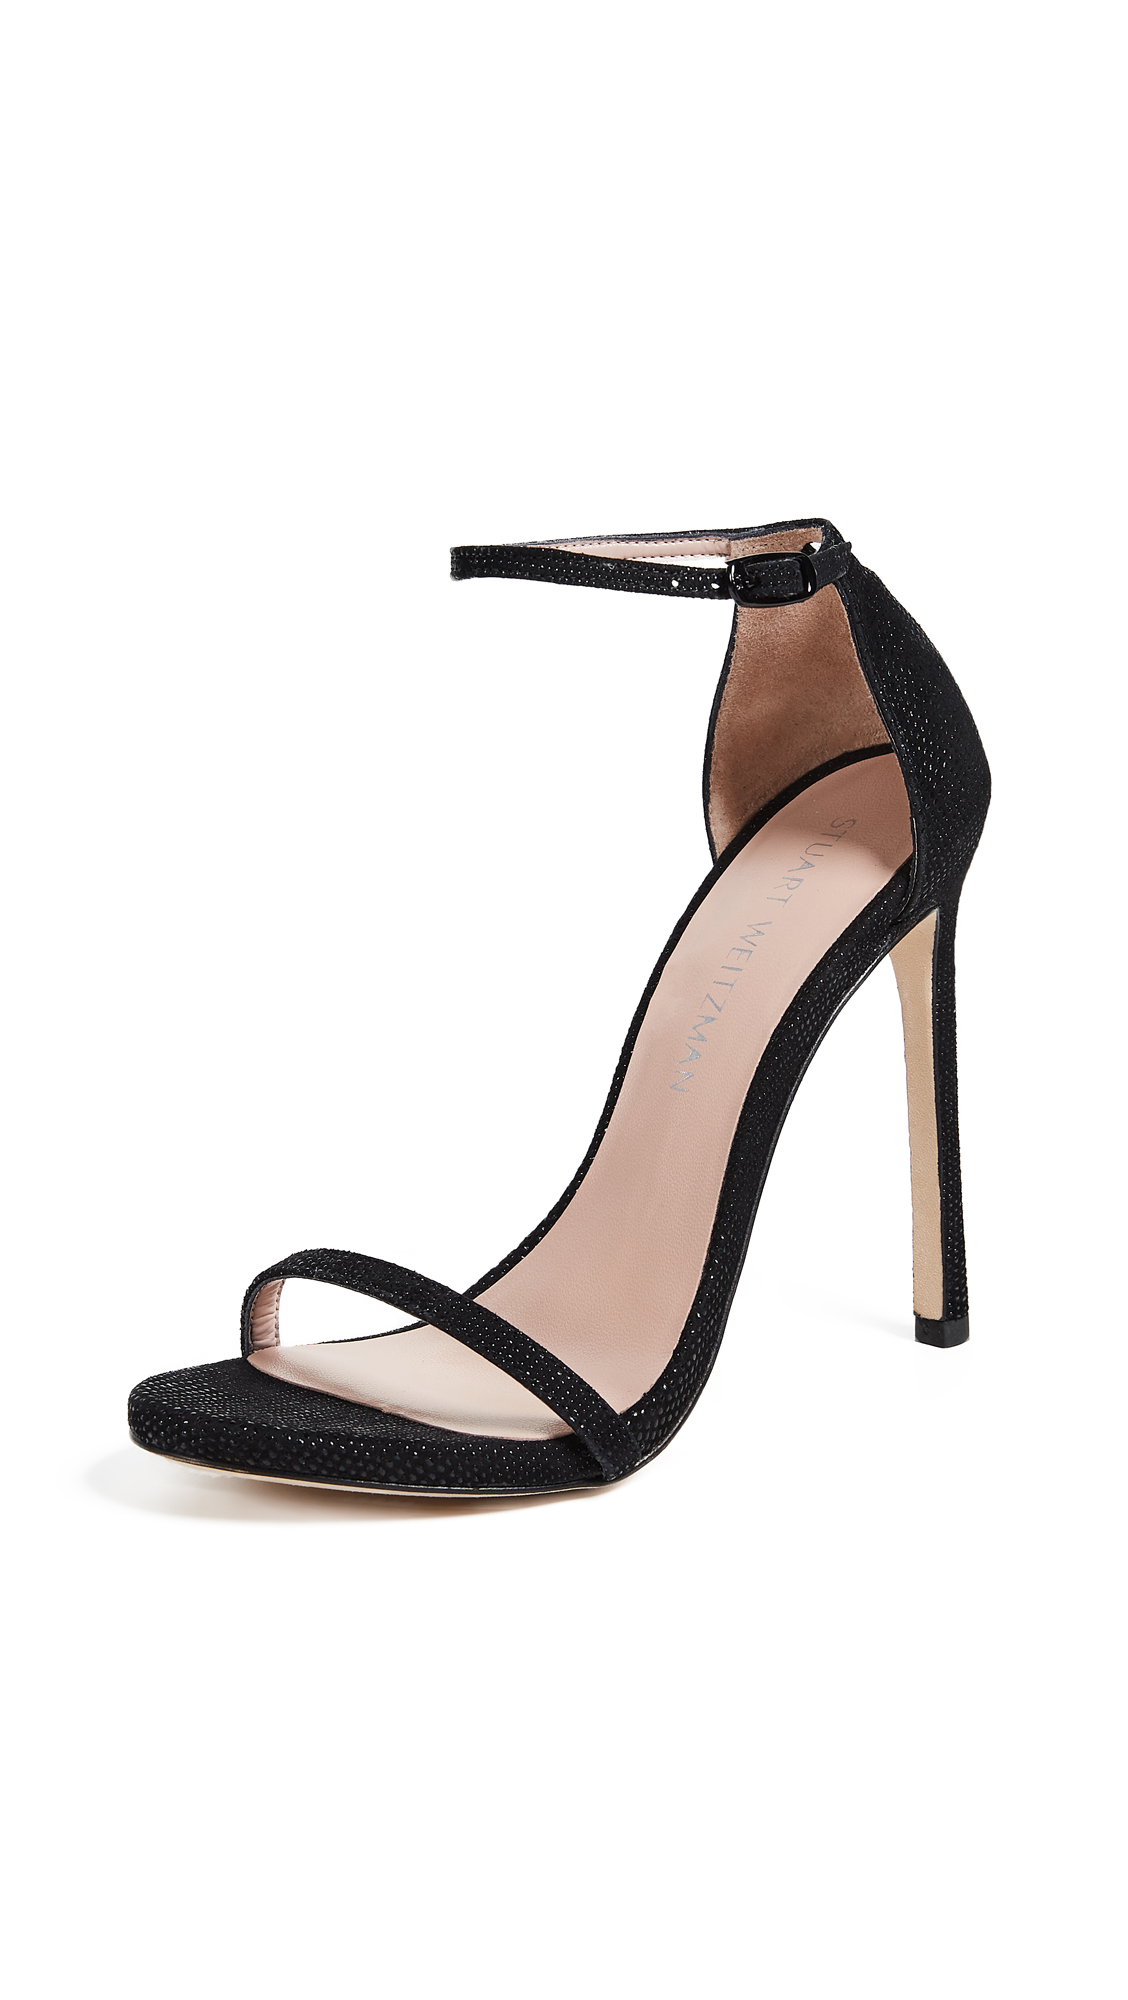 Stuart Weitzman Nudist Sandals - Black